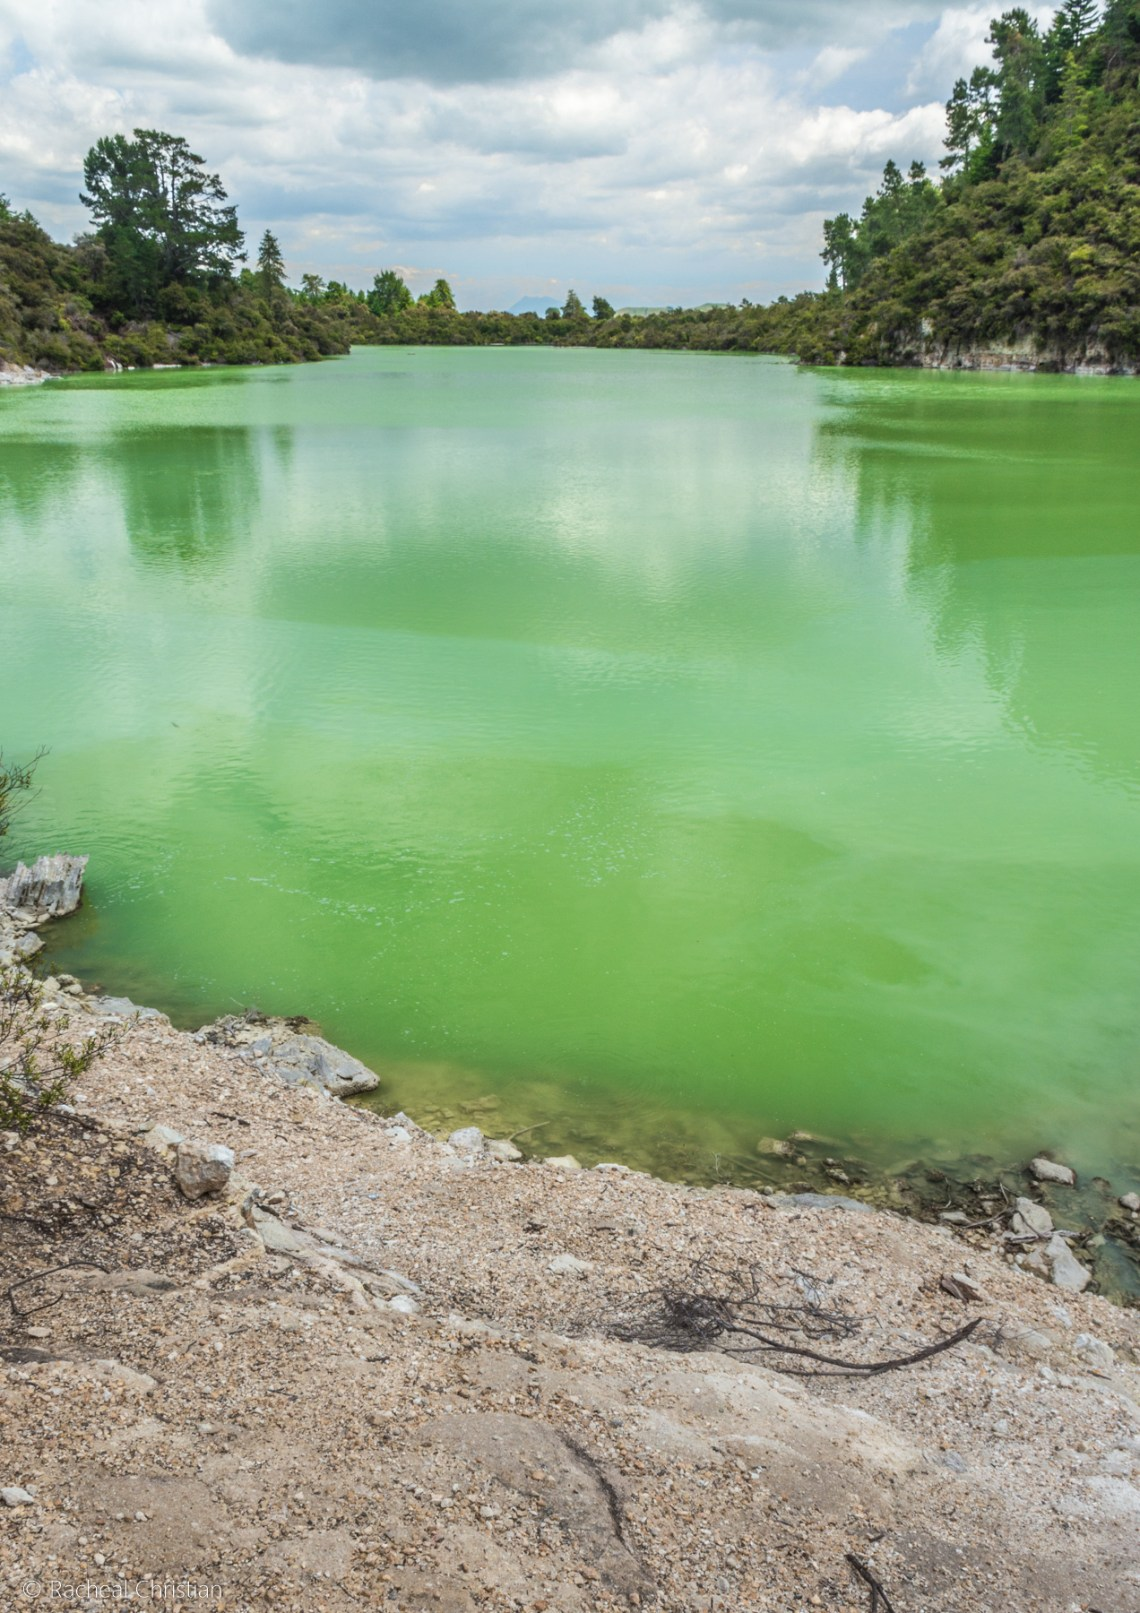 Wai-O-Tapu Thermal Wonderland |Rotorua, Lake Ngakoro New Zealand by Racheal Christian